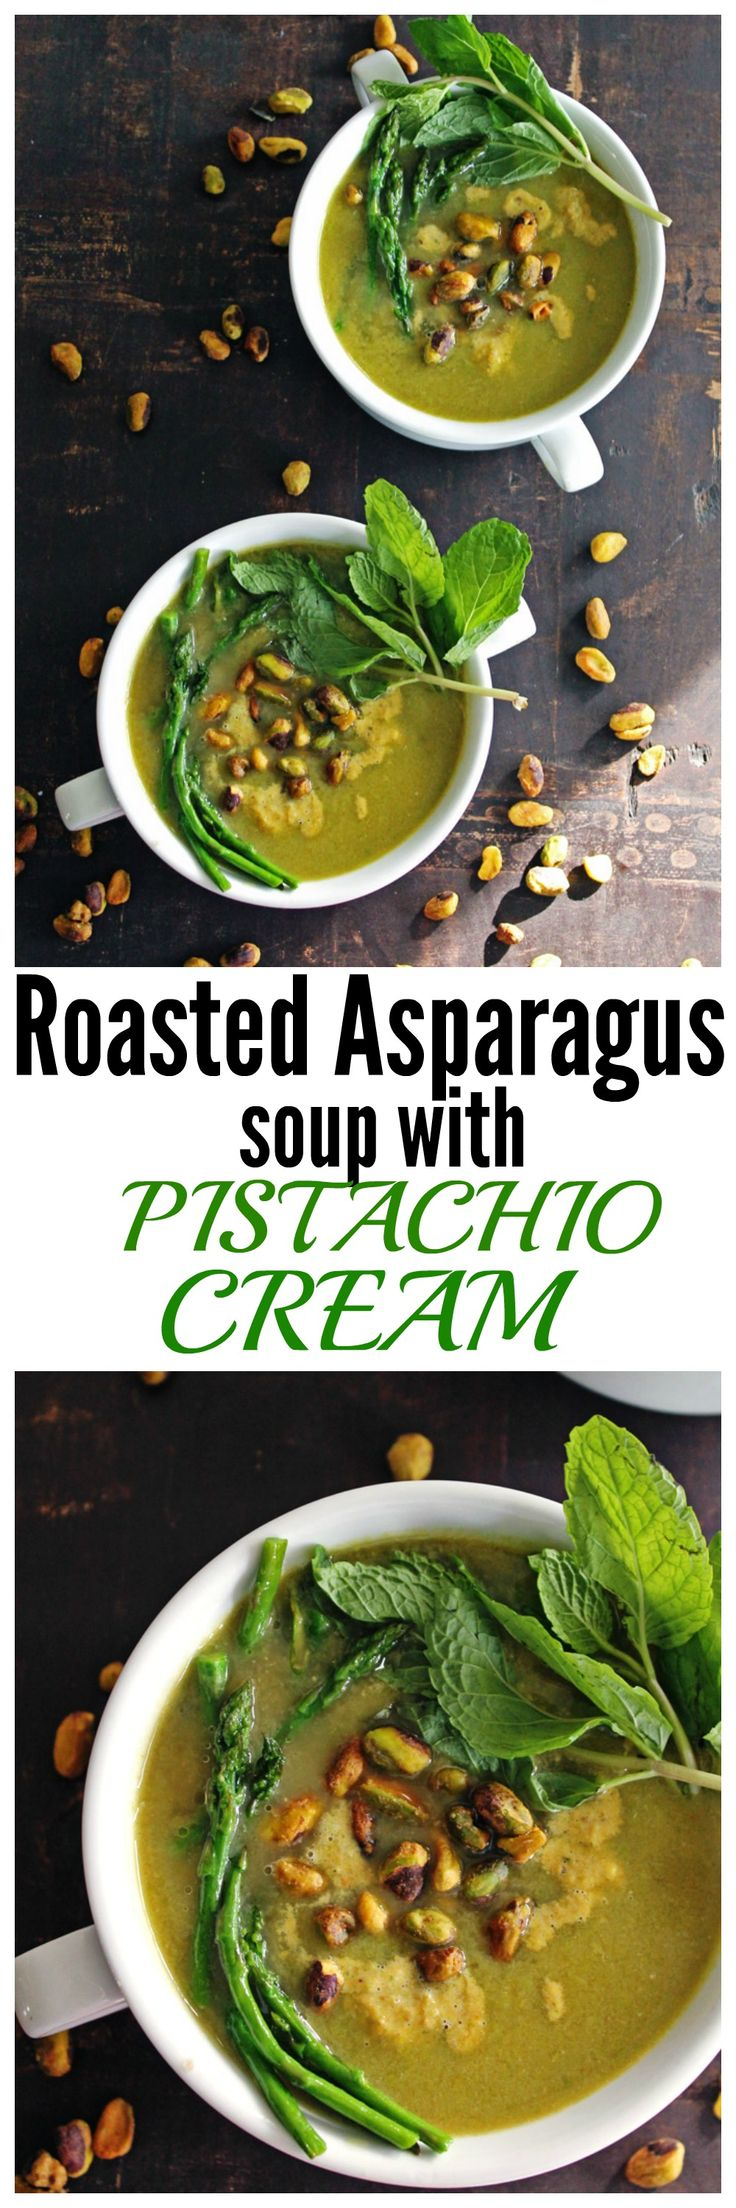 Awesome recipe for vegan roasted asparagus soup with pistachio cream from The Healthy Mind cookbook by Rebecca Katz!